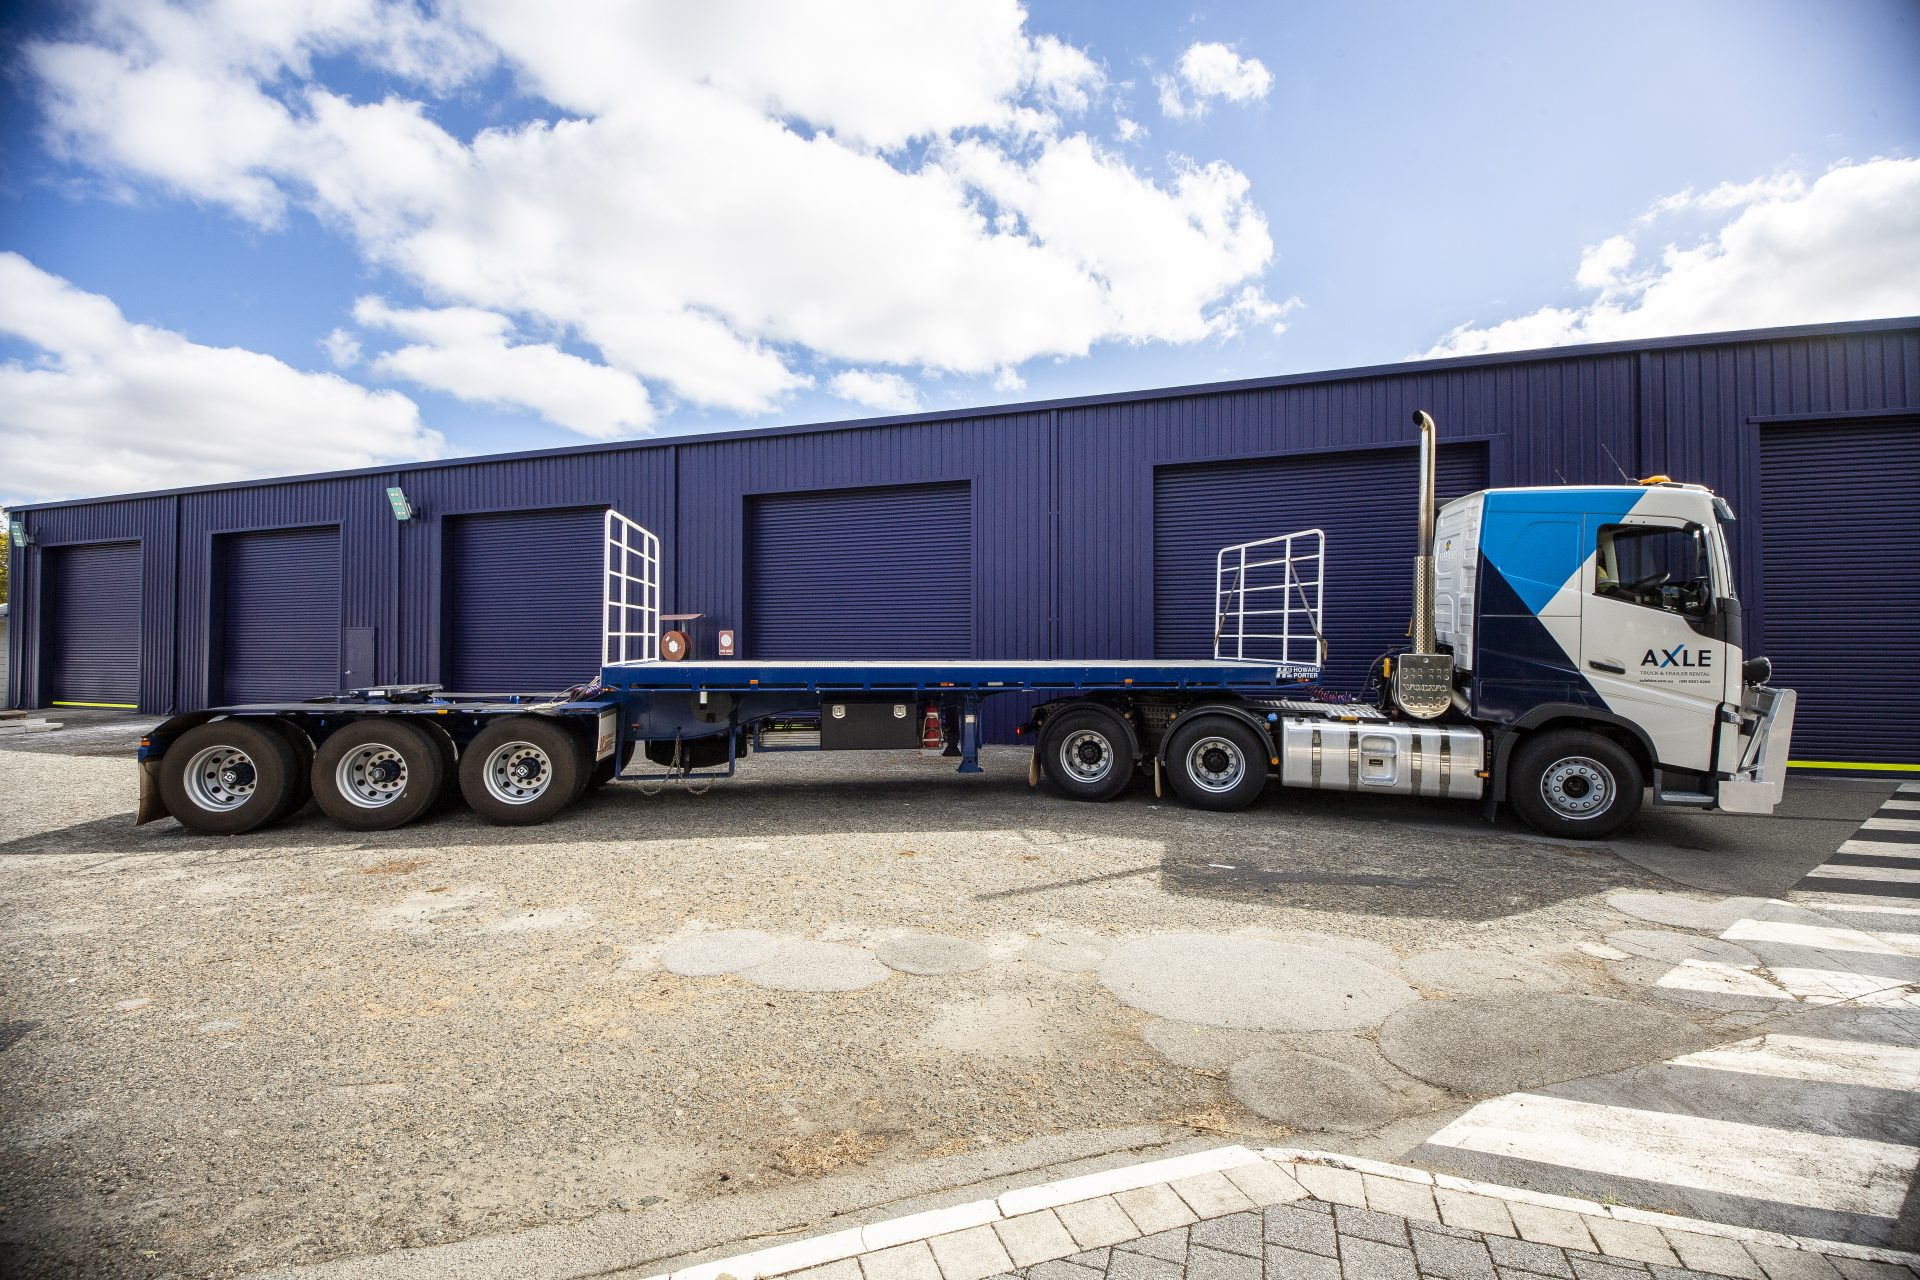 supplier of choice for the transport industry